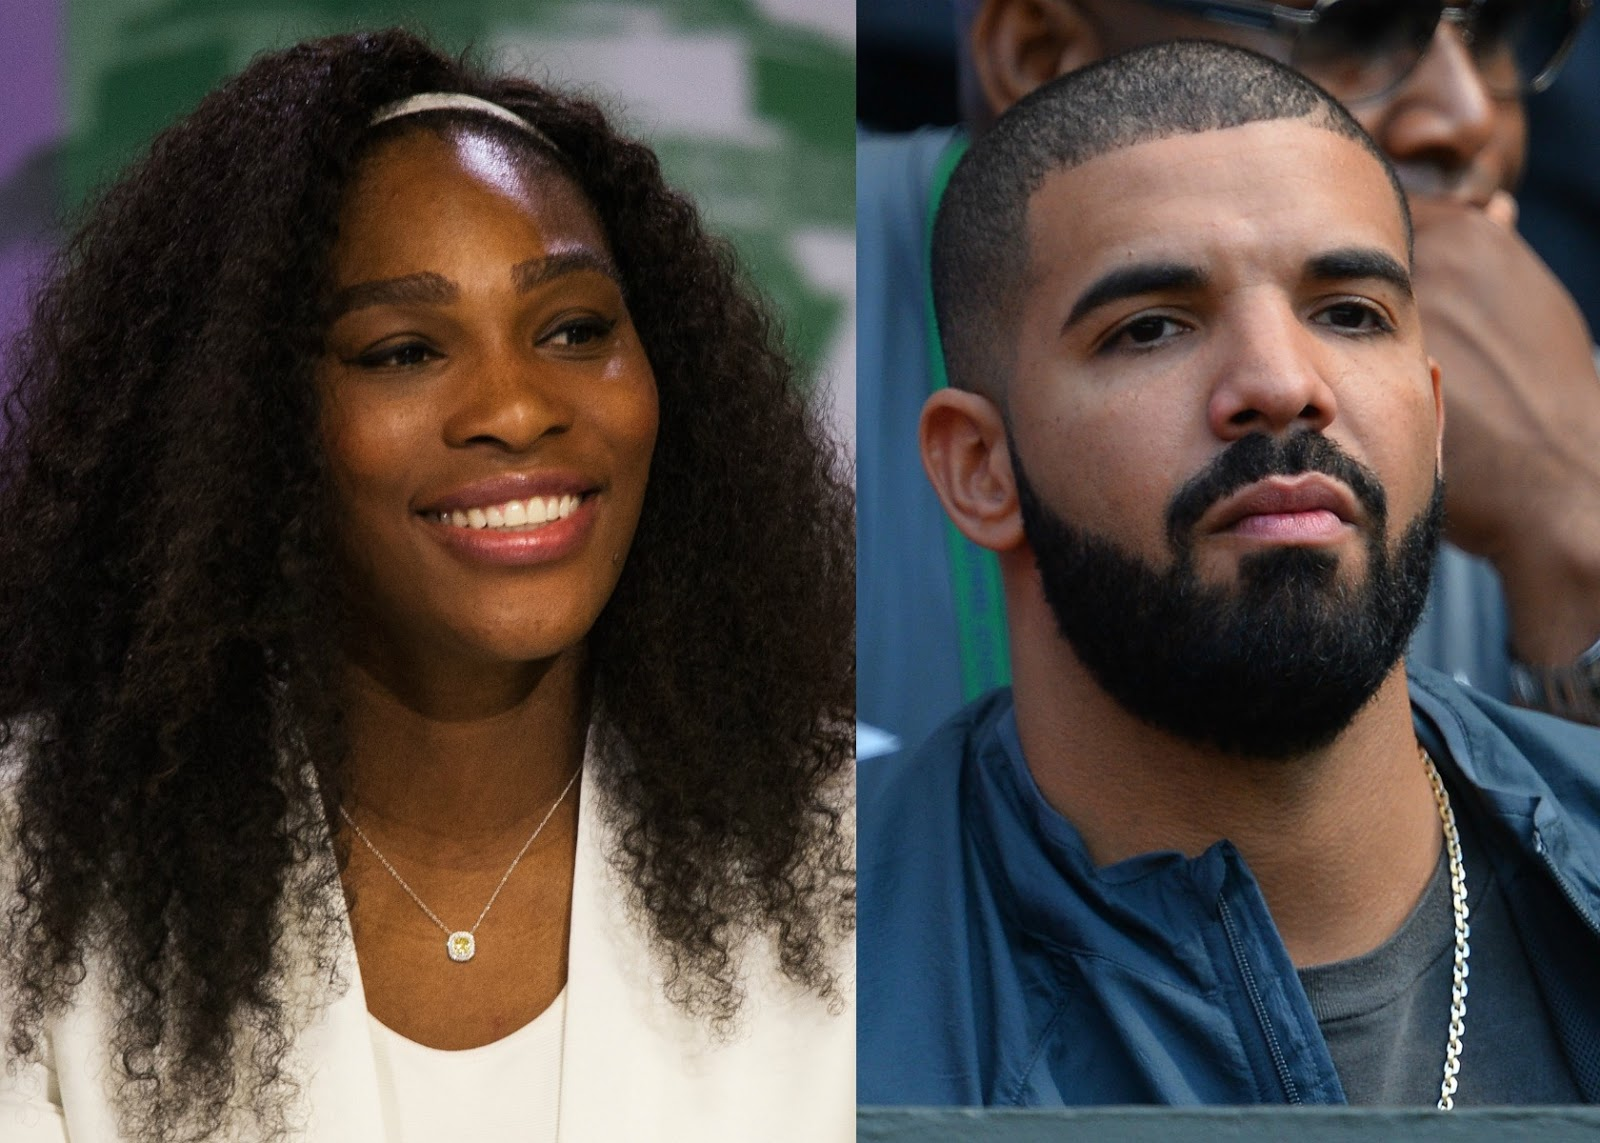 Who is serena dating